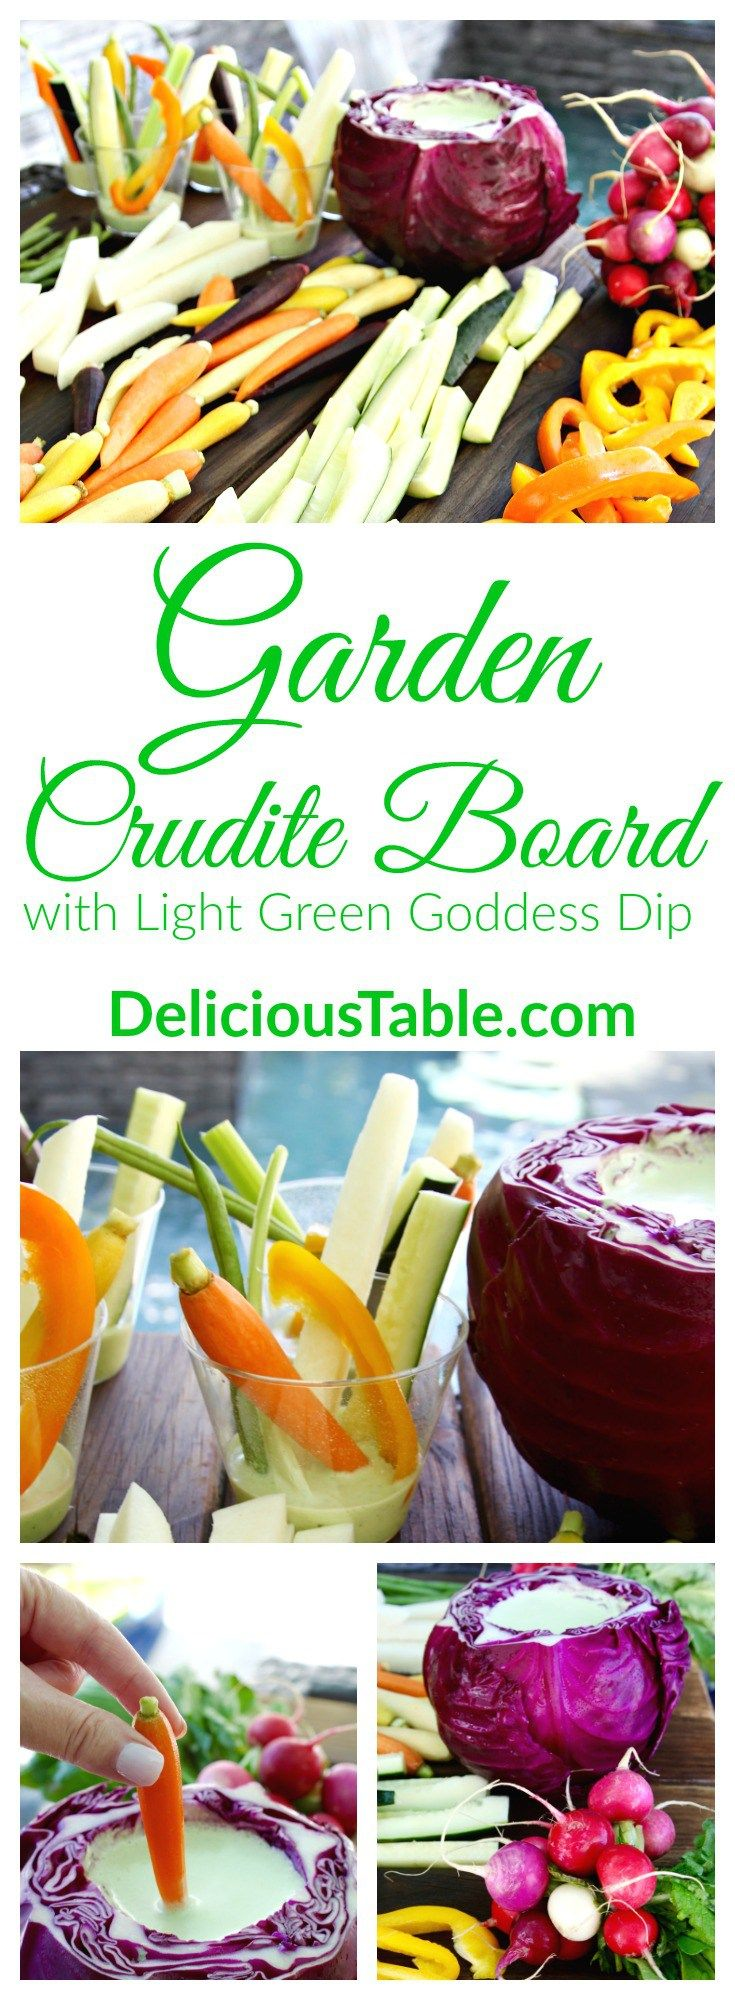 Serve fresh Garden Crudités in Light Green Goddess Dip in a bright purple cabbage bowl or in little cups for brunch, a spring shower, or garden pool party!